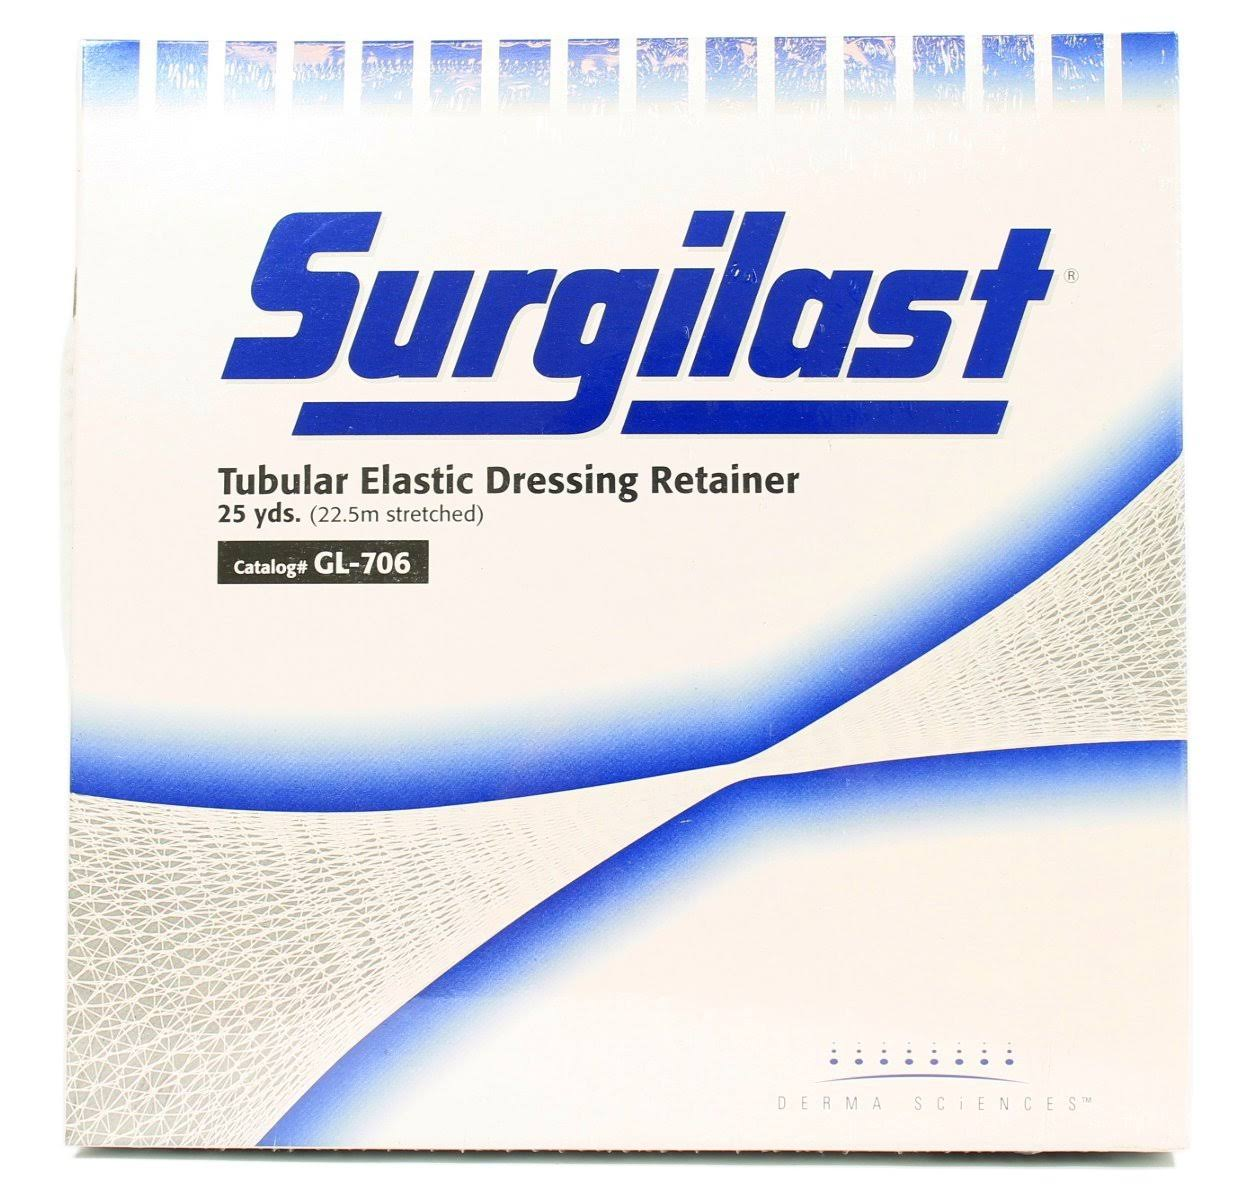 Derma Sciences Surgilast Tubular Elastic Dressing Retainer - Size 5, 25 yds